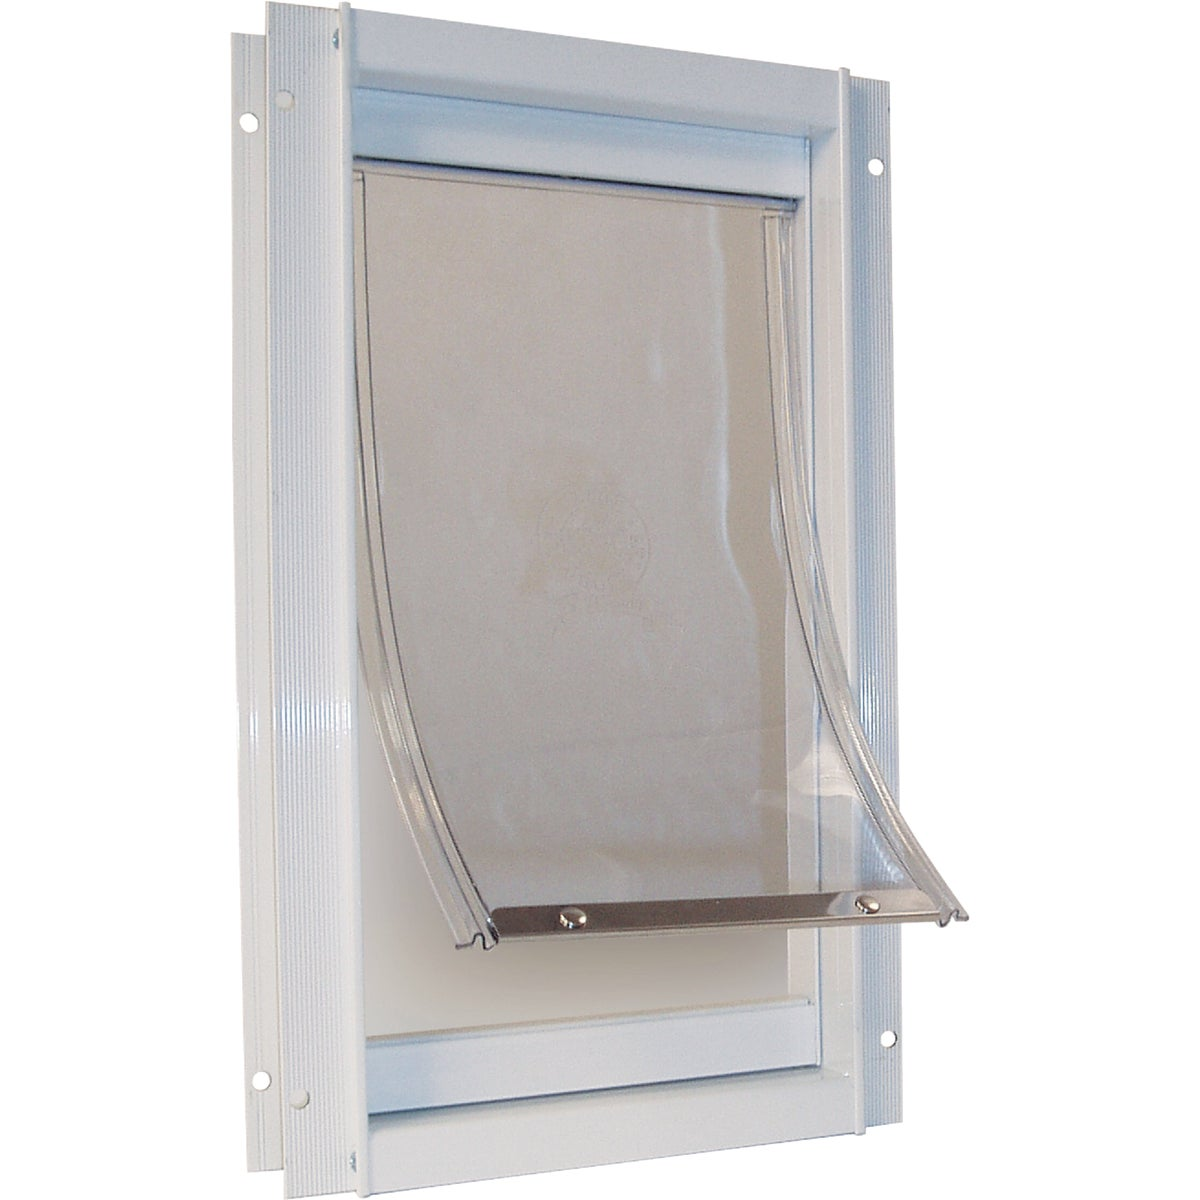 SMALL PLASTIC PET DOOR